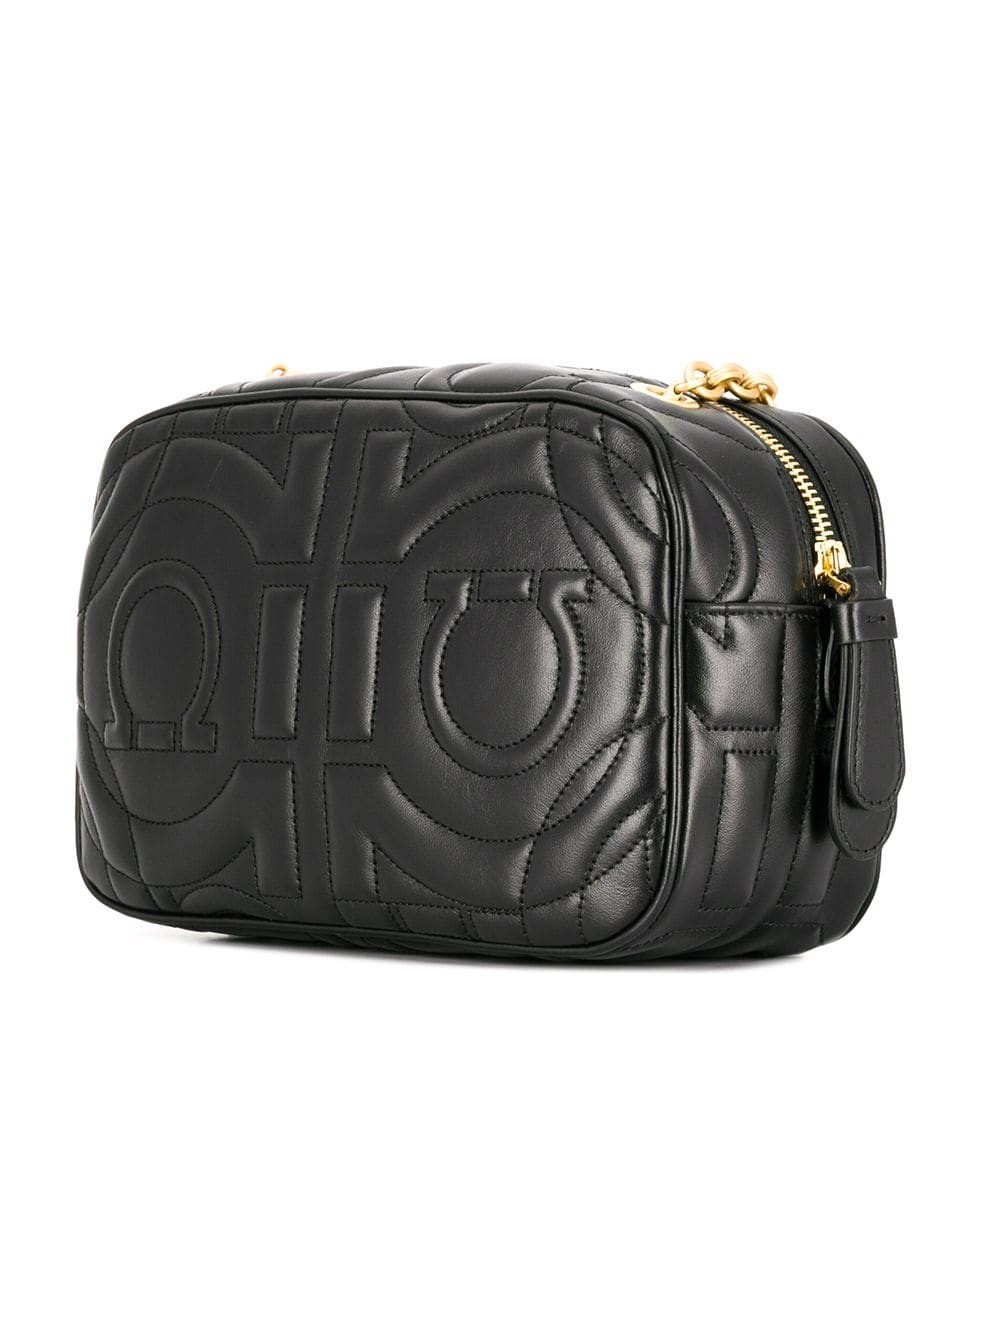 salvatore ferragamo QUILTED CROSS BODY BAG available on ... 73ae9b301ce52